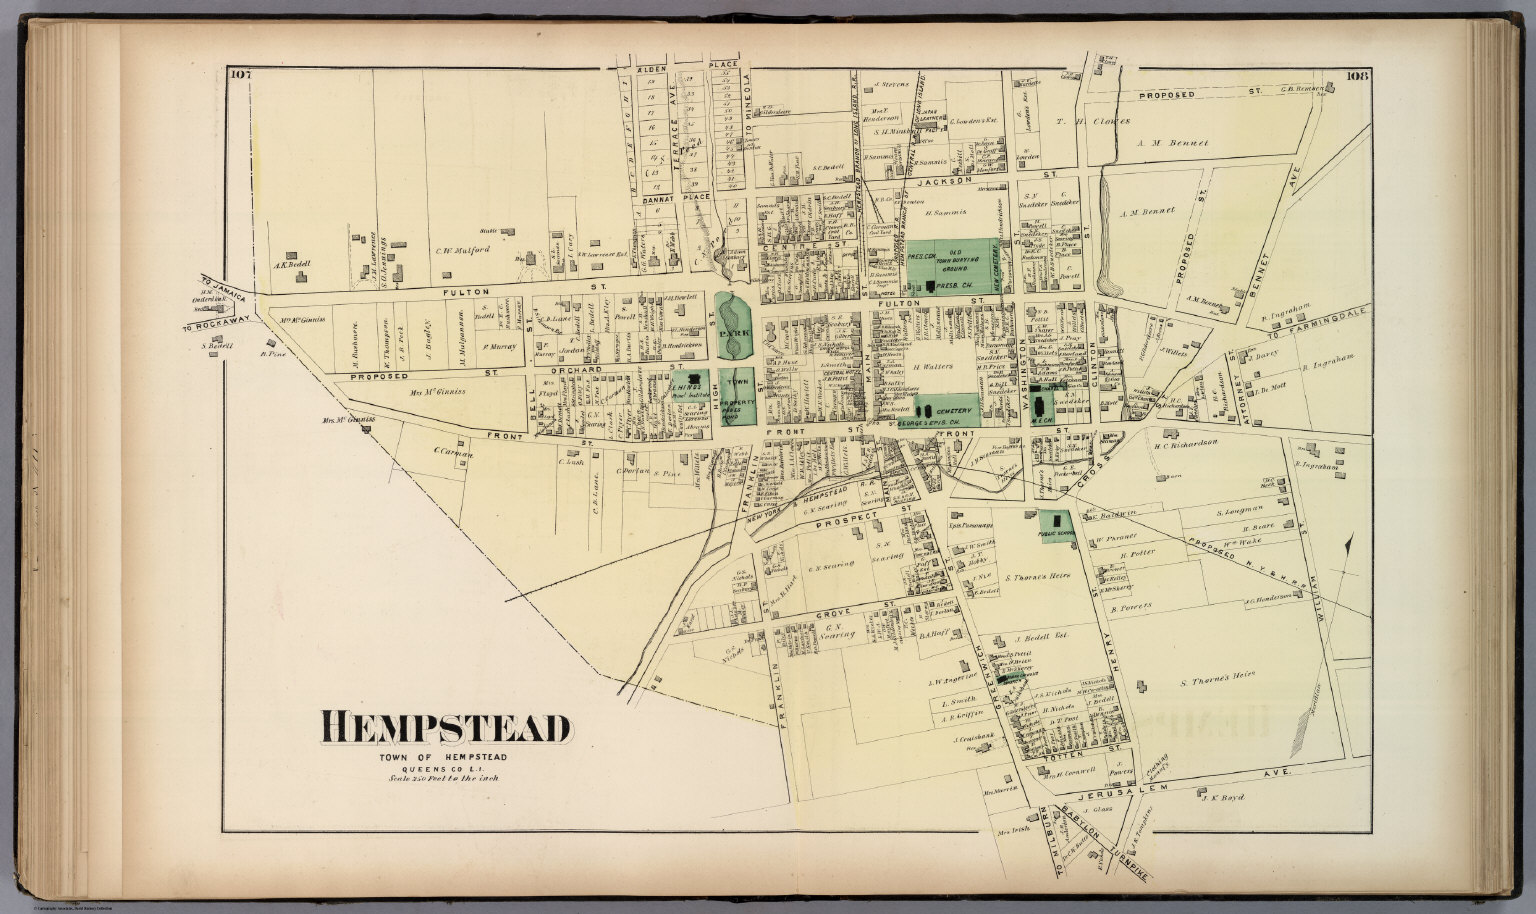 Hempstead, Town of Hempstead, Queens Co., L.I. - David Rumseyhempstead town